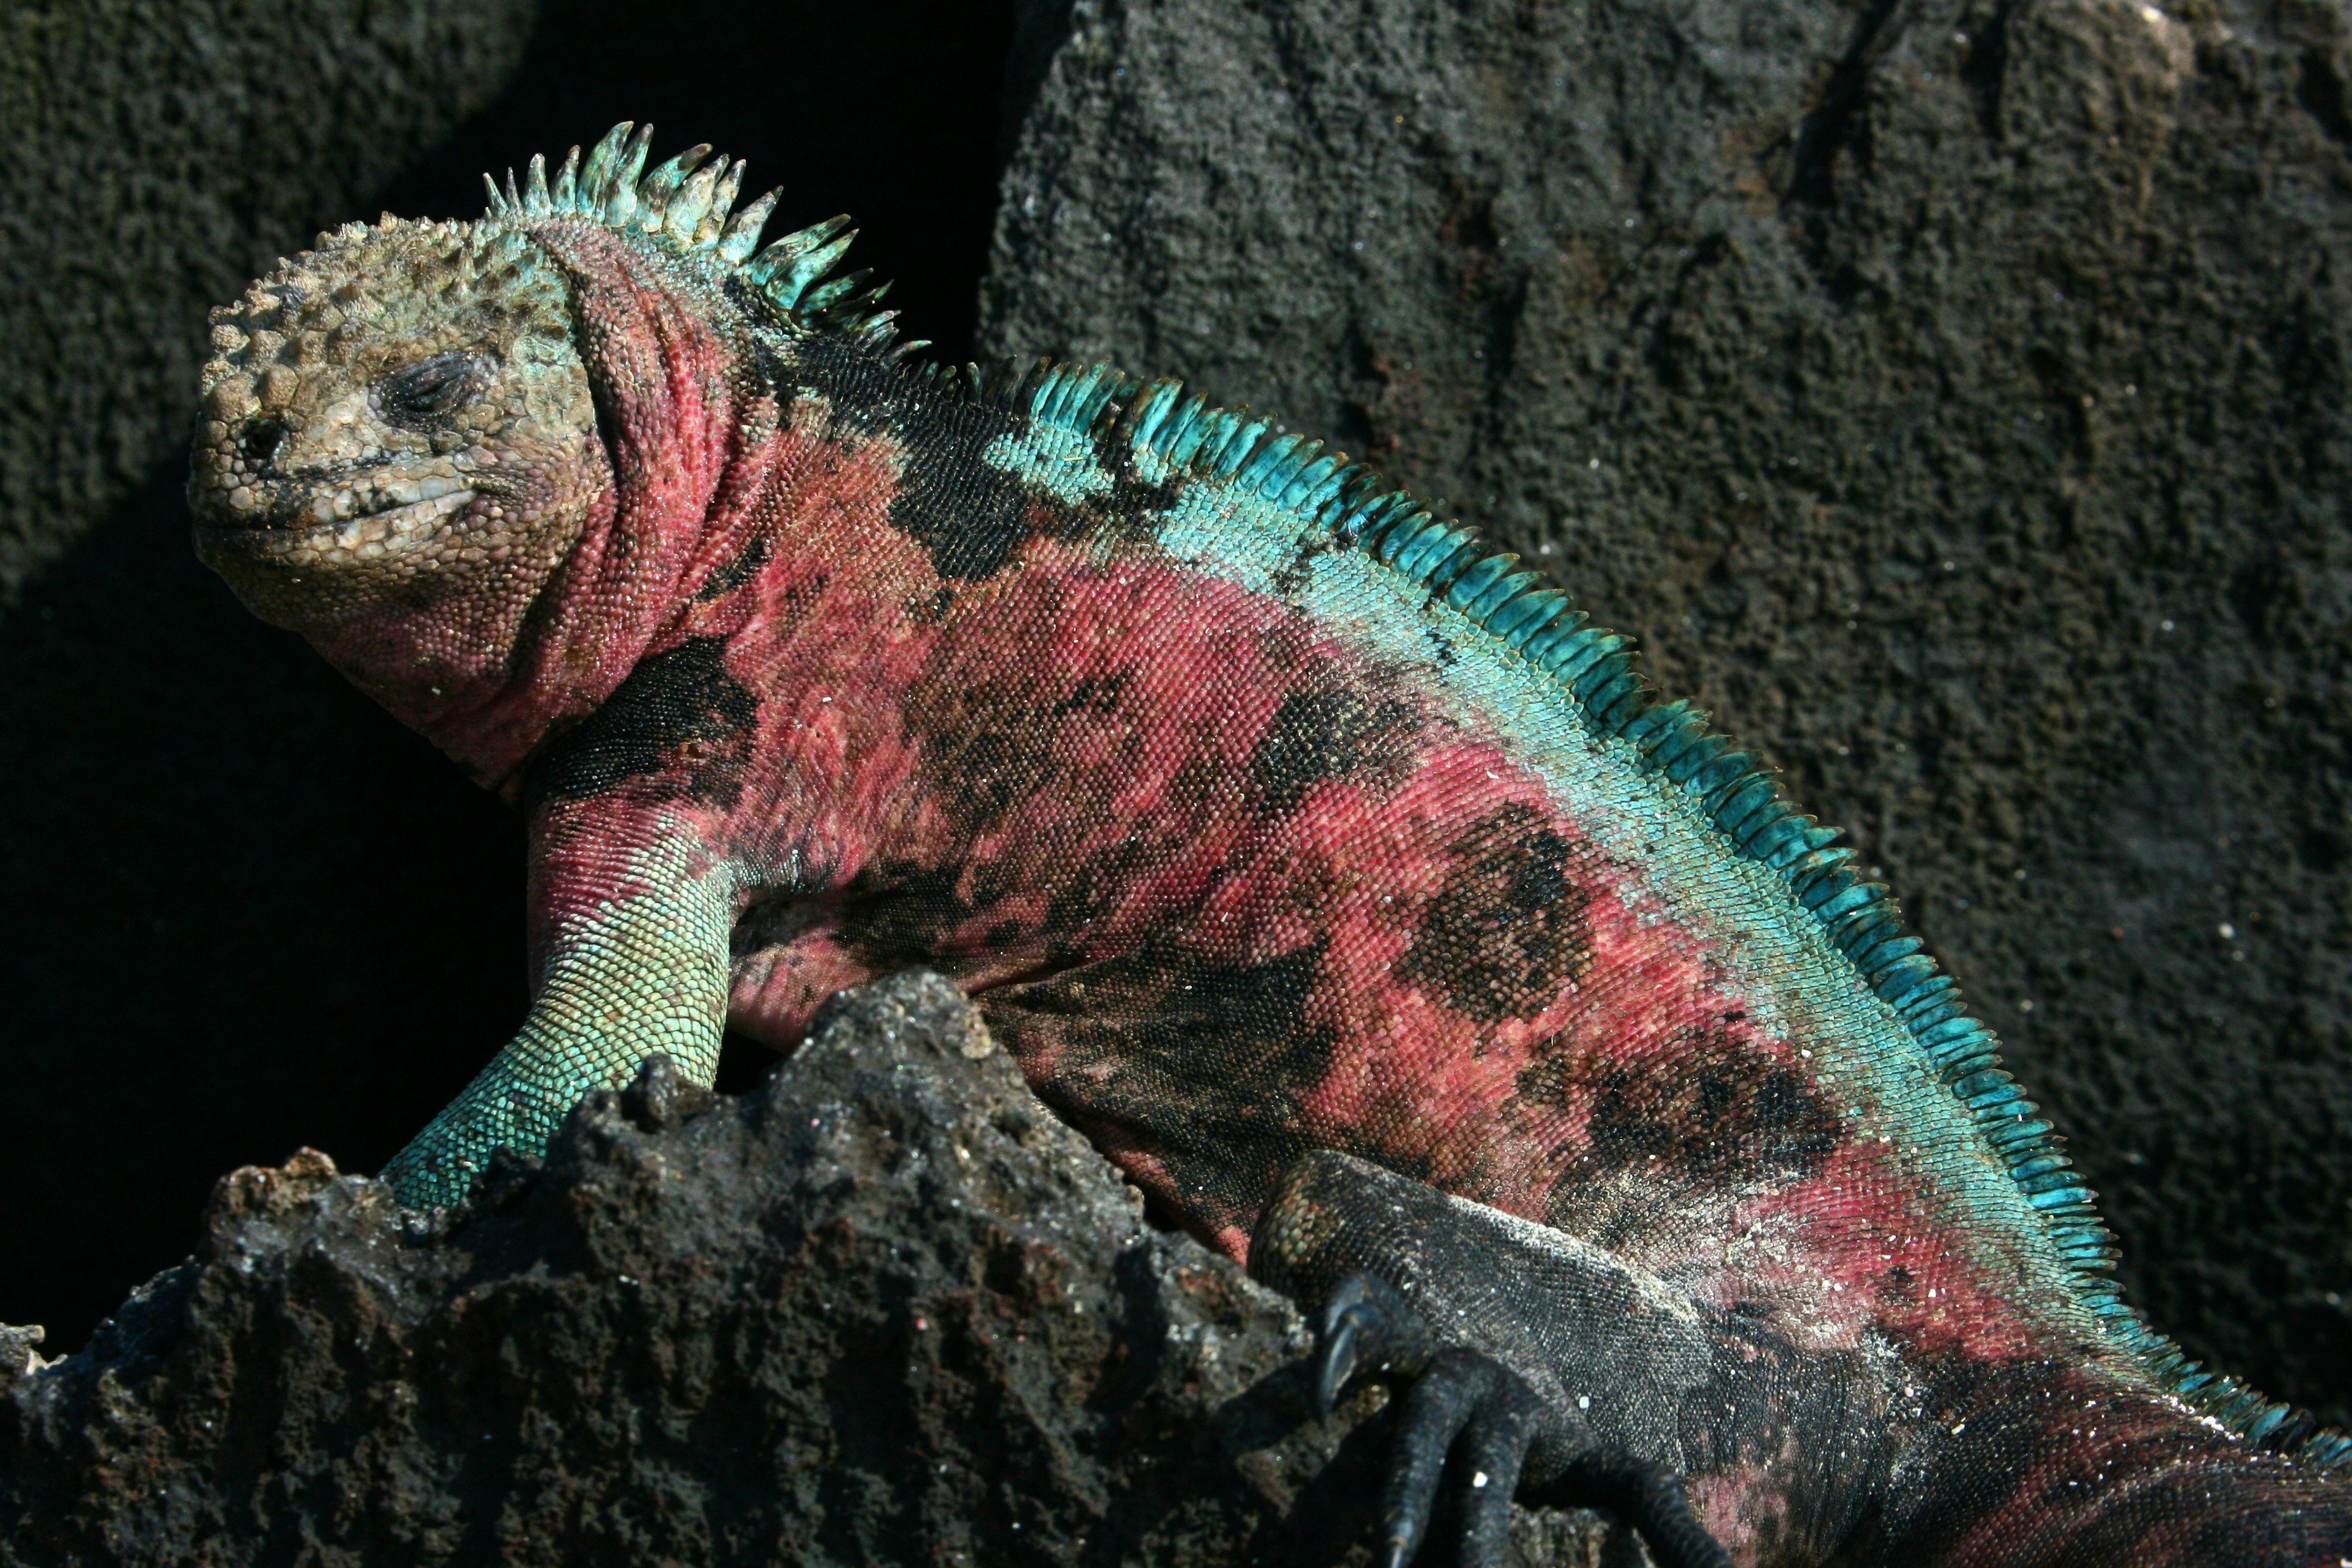 3. The Marine Iguana Can Hold Its Breath for 15 Minutes